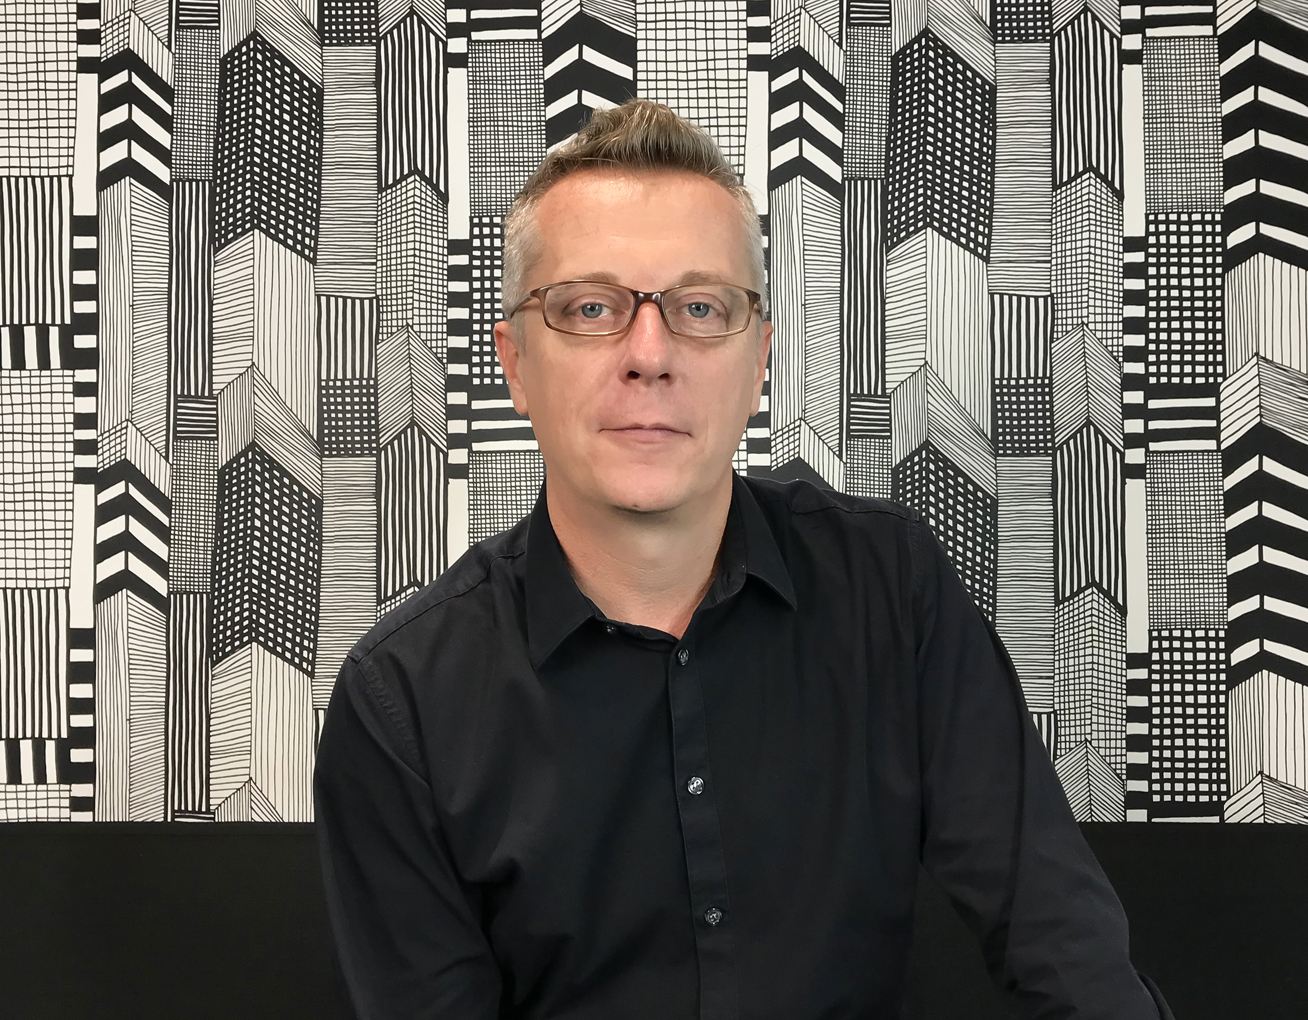 Edward Williams elevated to General Manager Isobar Hong Kong